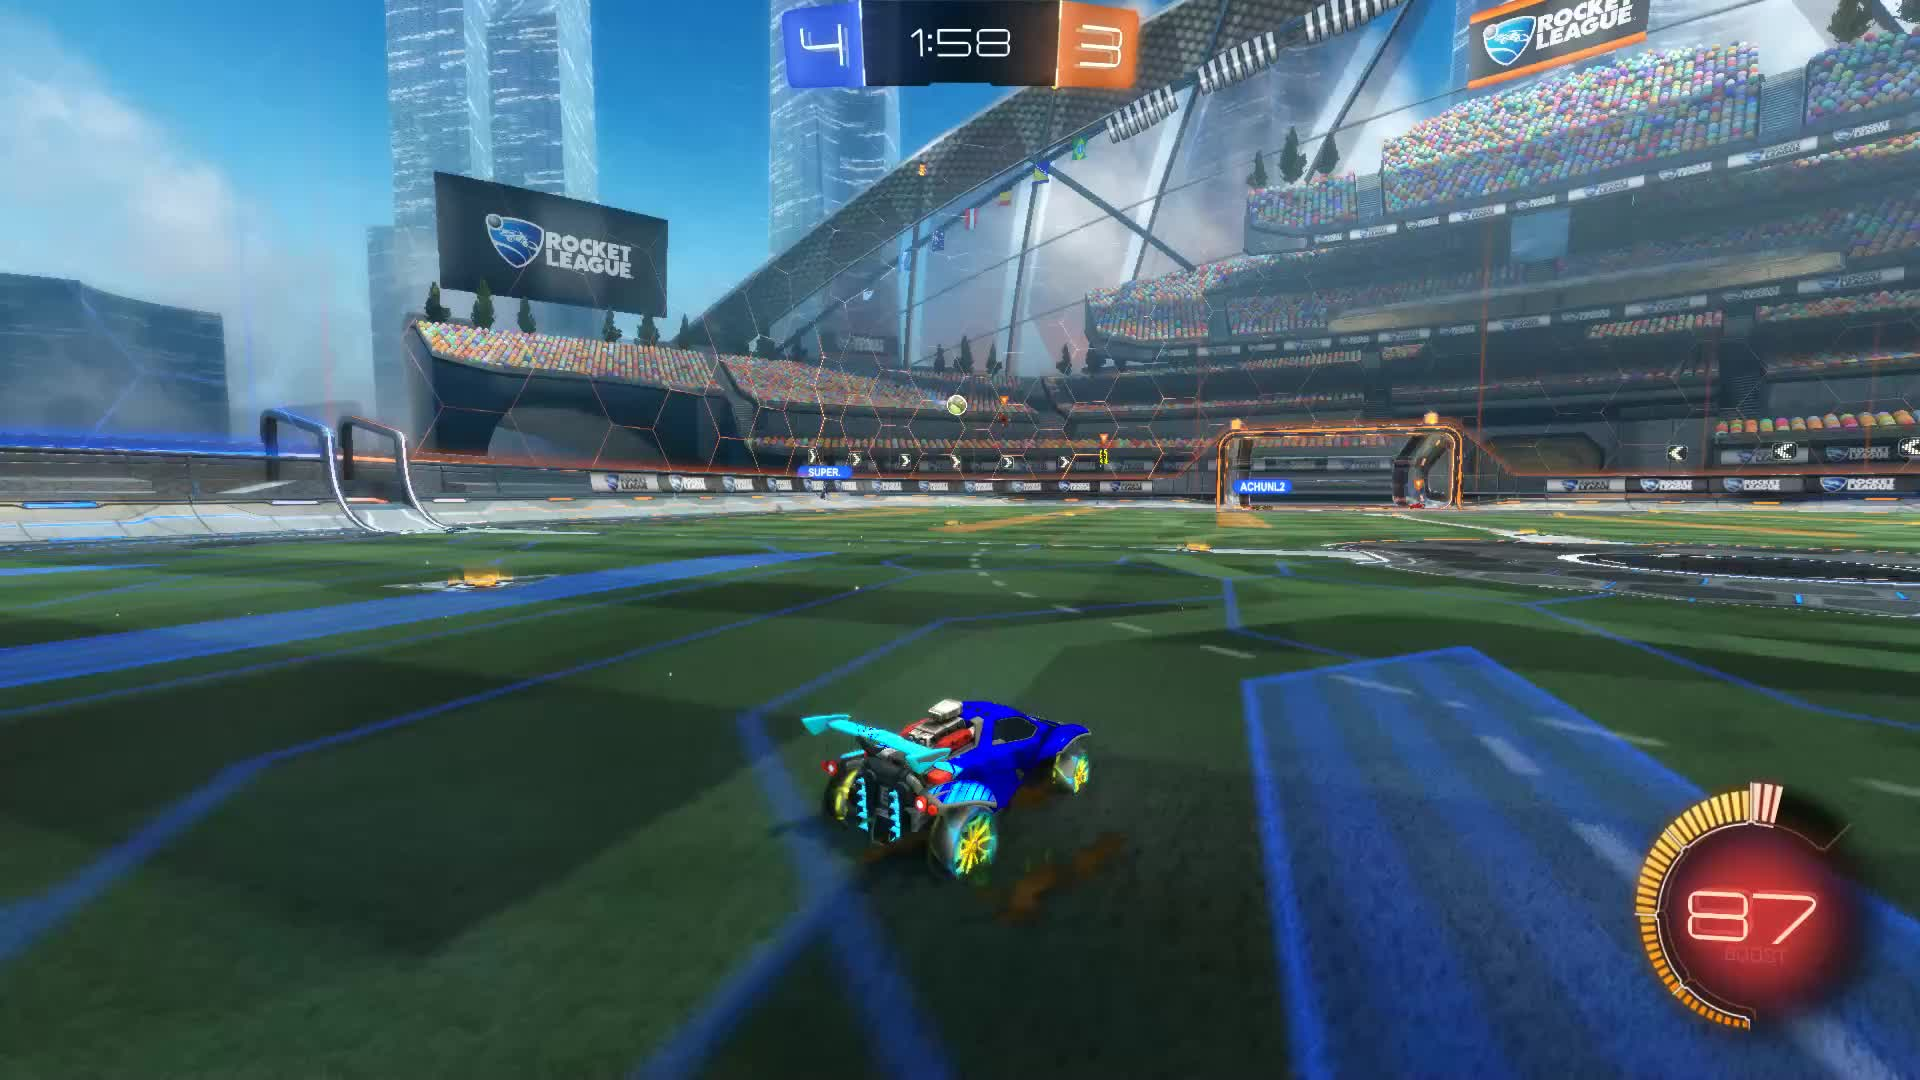 Assist, Gif Your Game, GifYourGame, Hellosh, Rocket League, RocketLeague, Assist 7: Hellosh GIFs